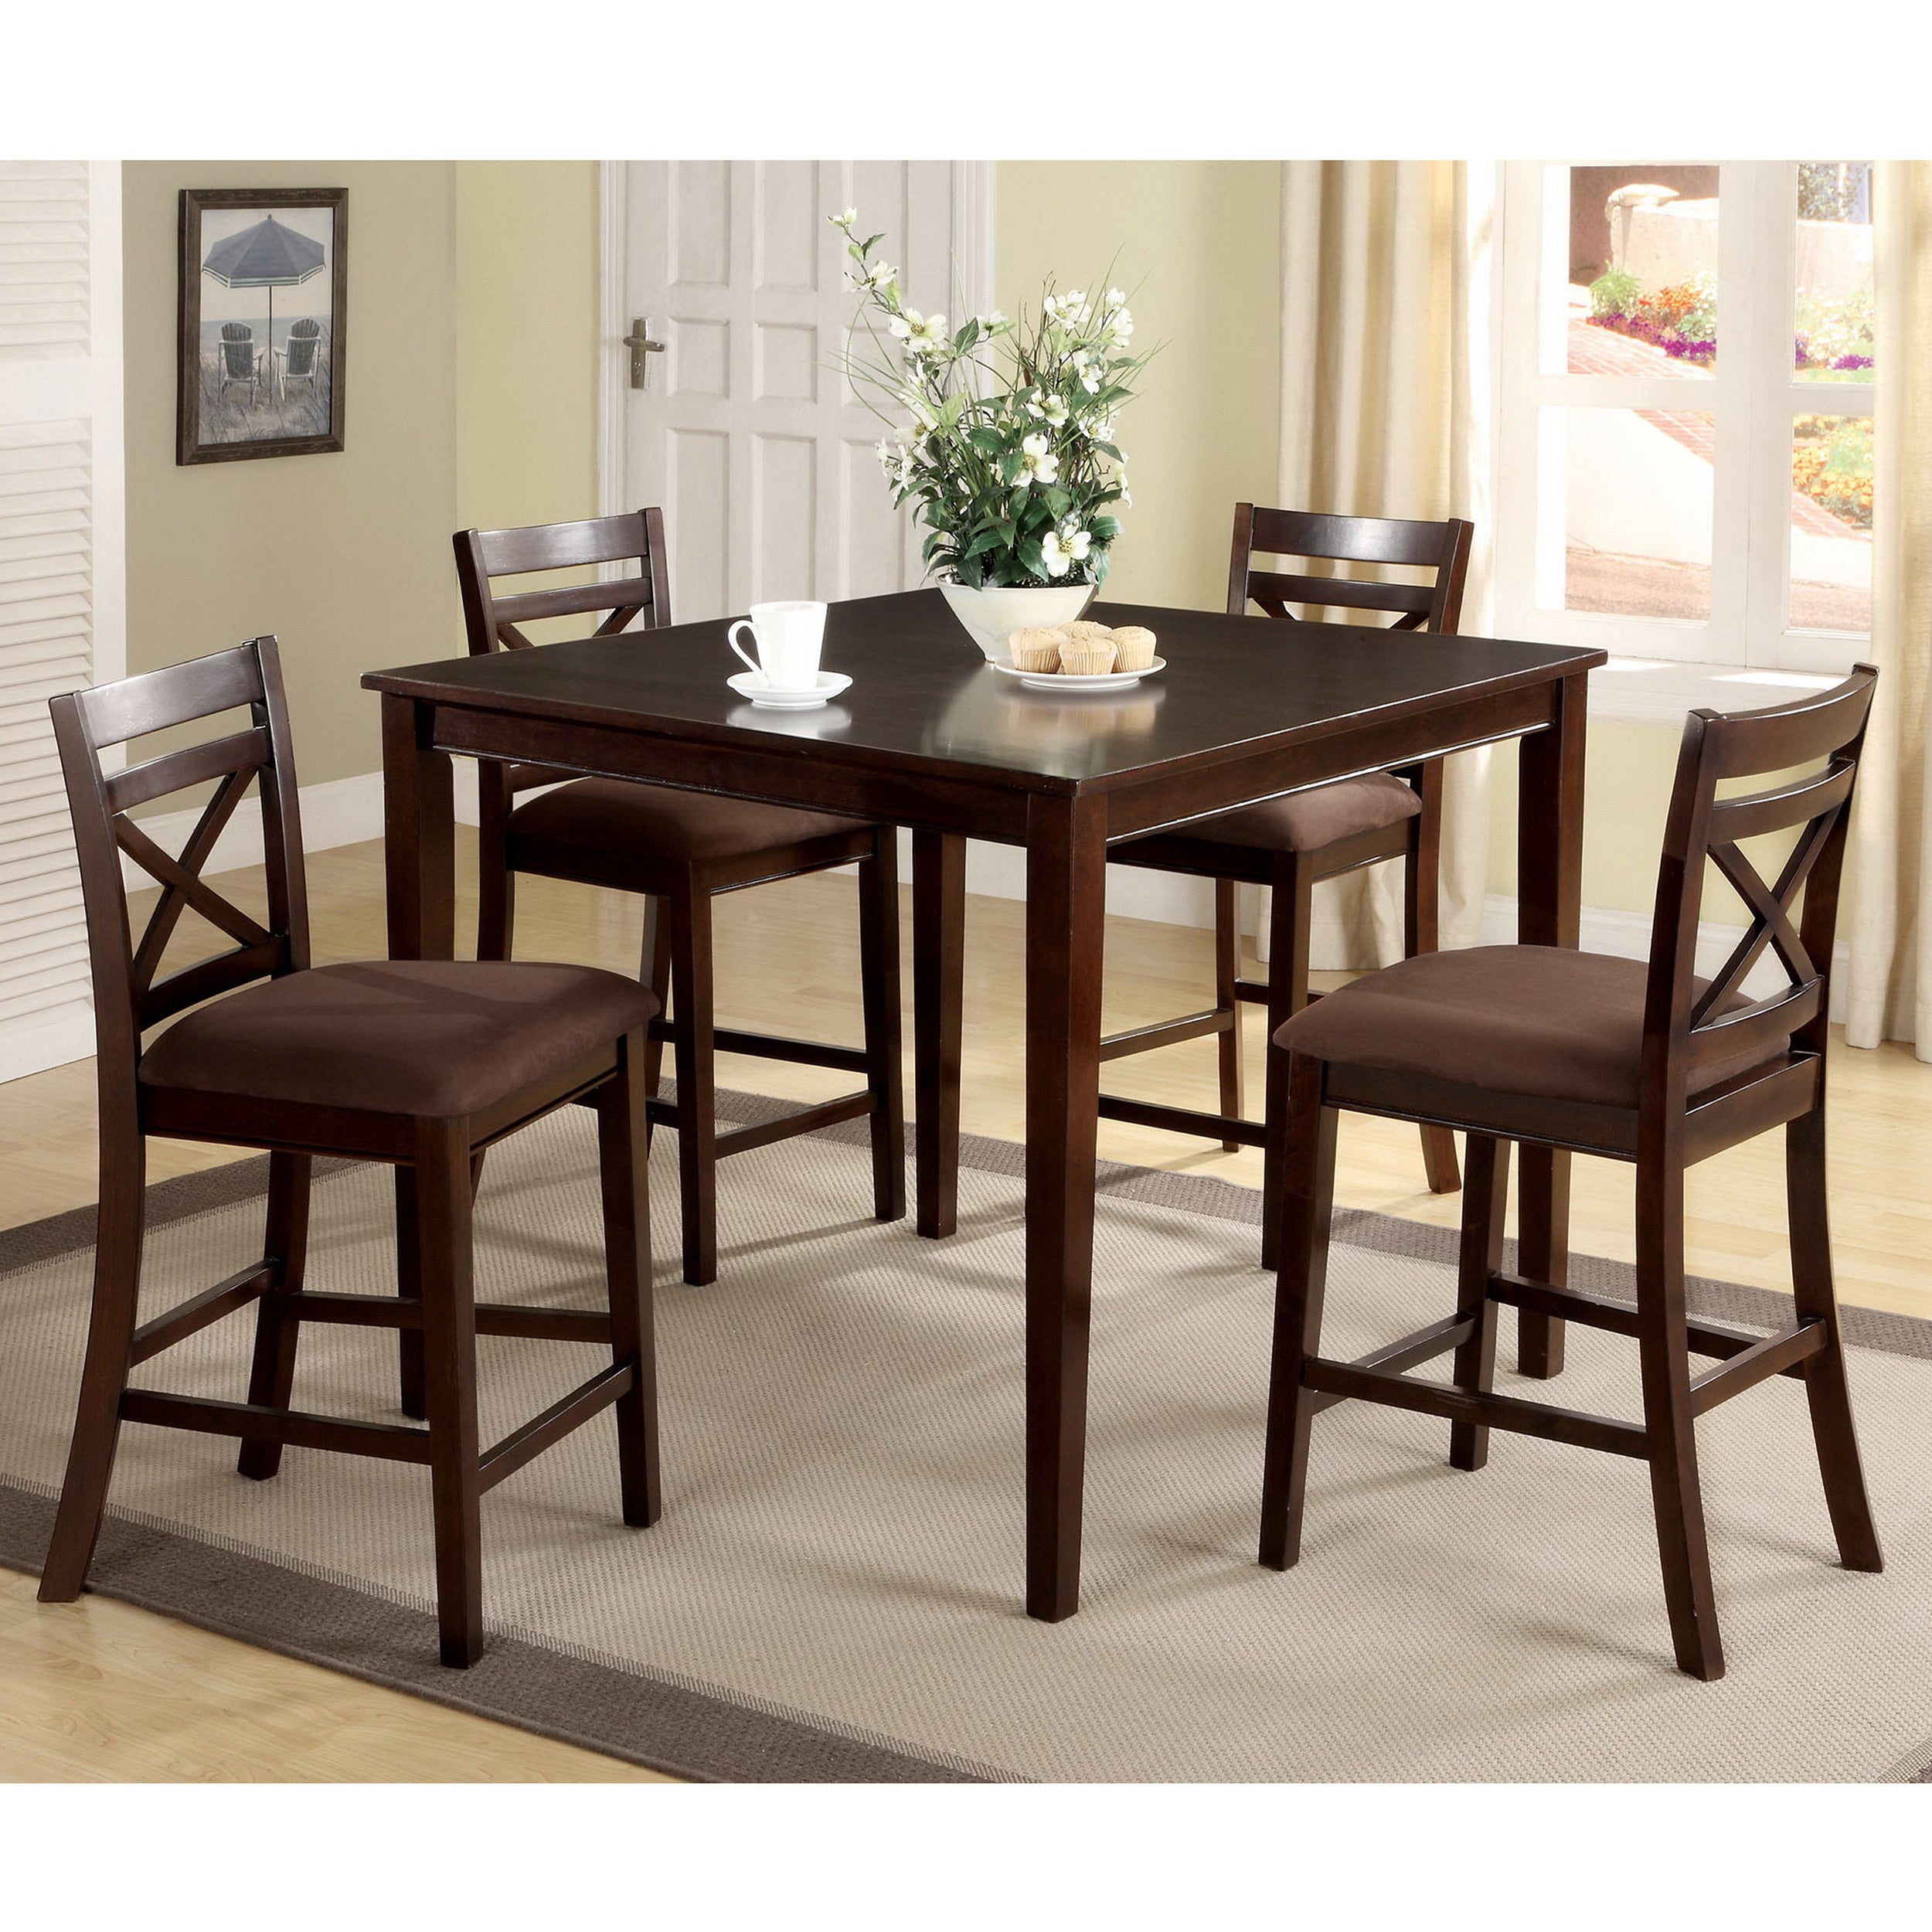 Bettencourt 3 Piece Counter Height Solid Wood Dining Sets In 2019 Shop Copper Grove Catlerock 5 Piece Counter Height Dining Set – On (#3 of 20)